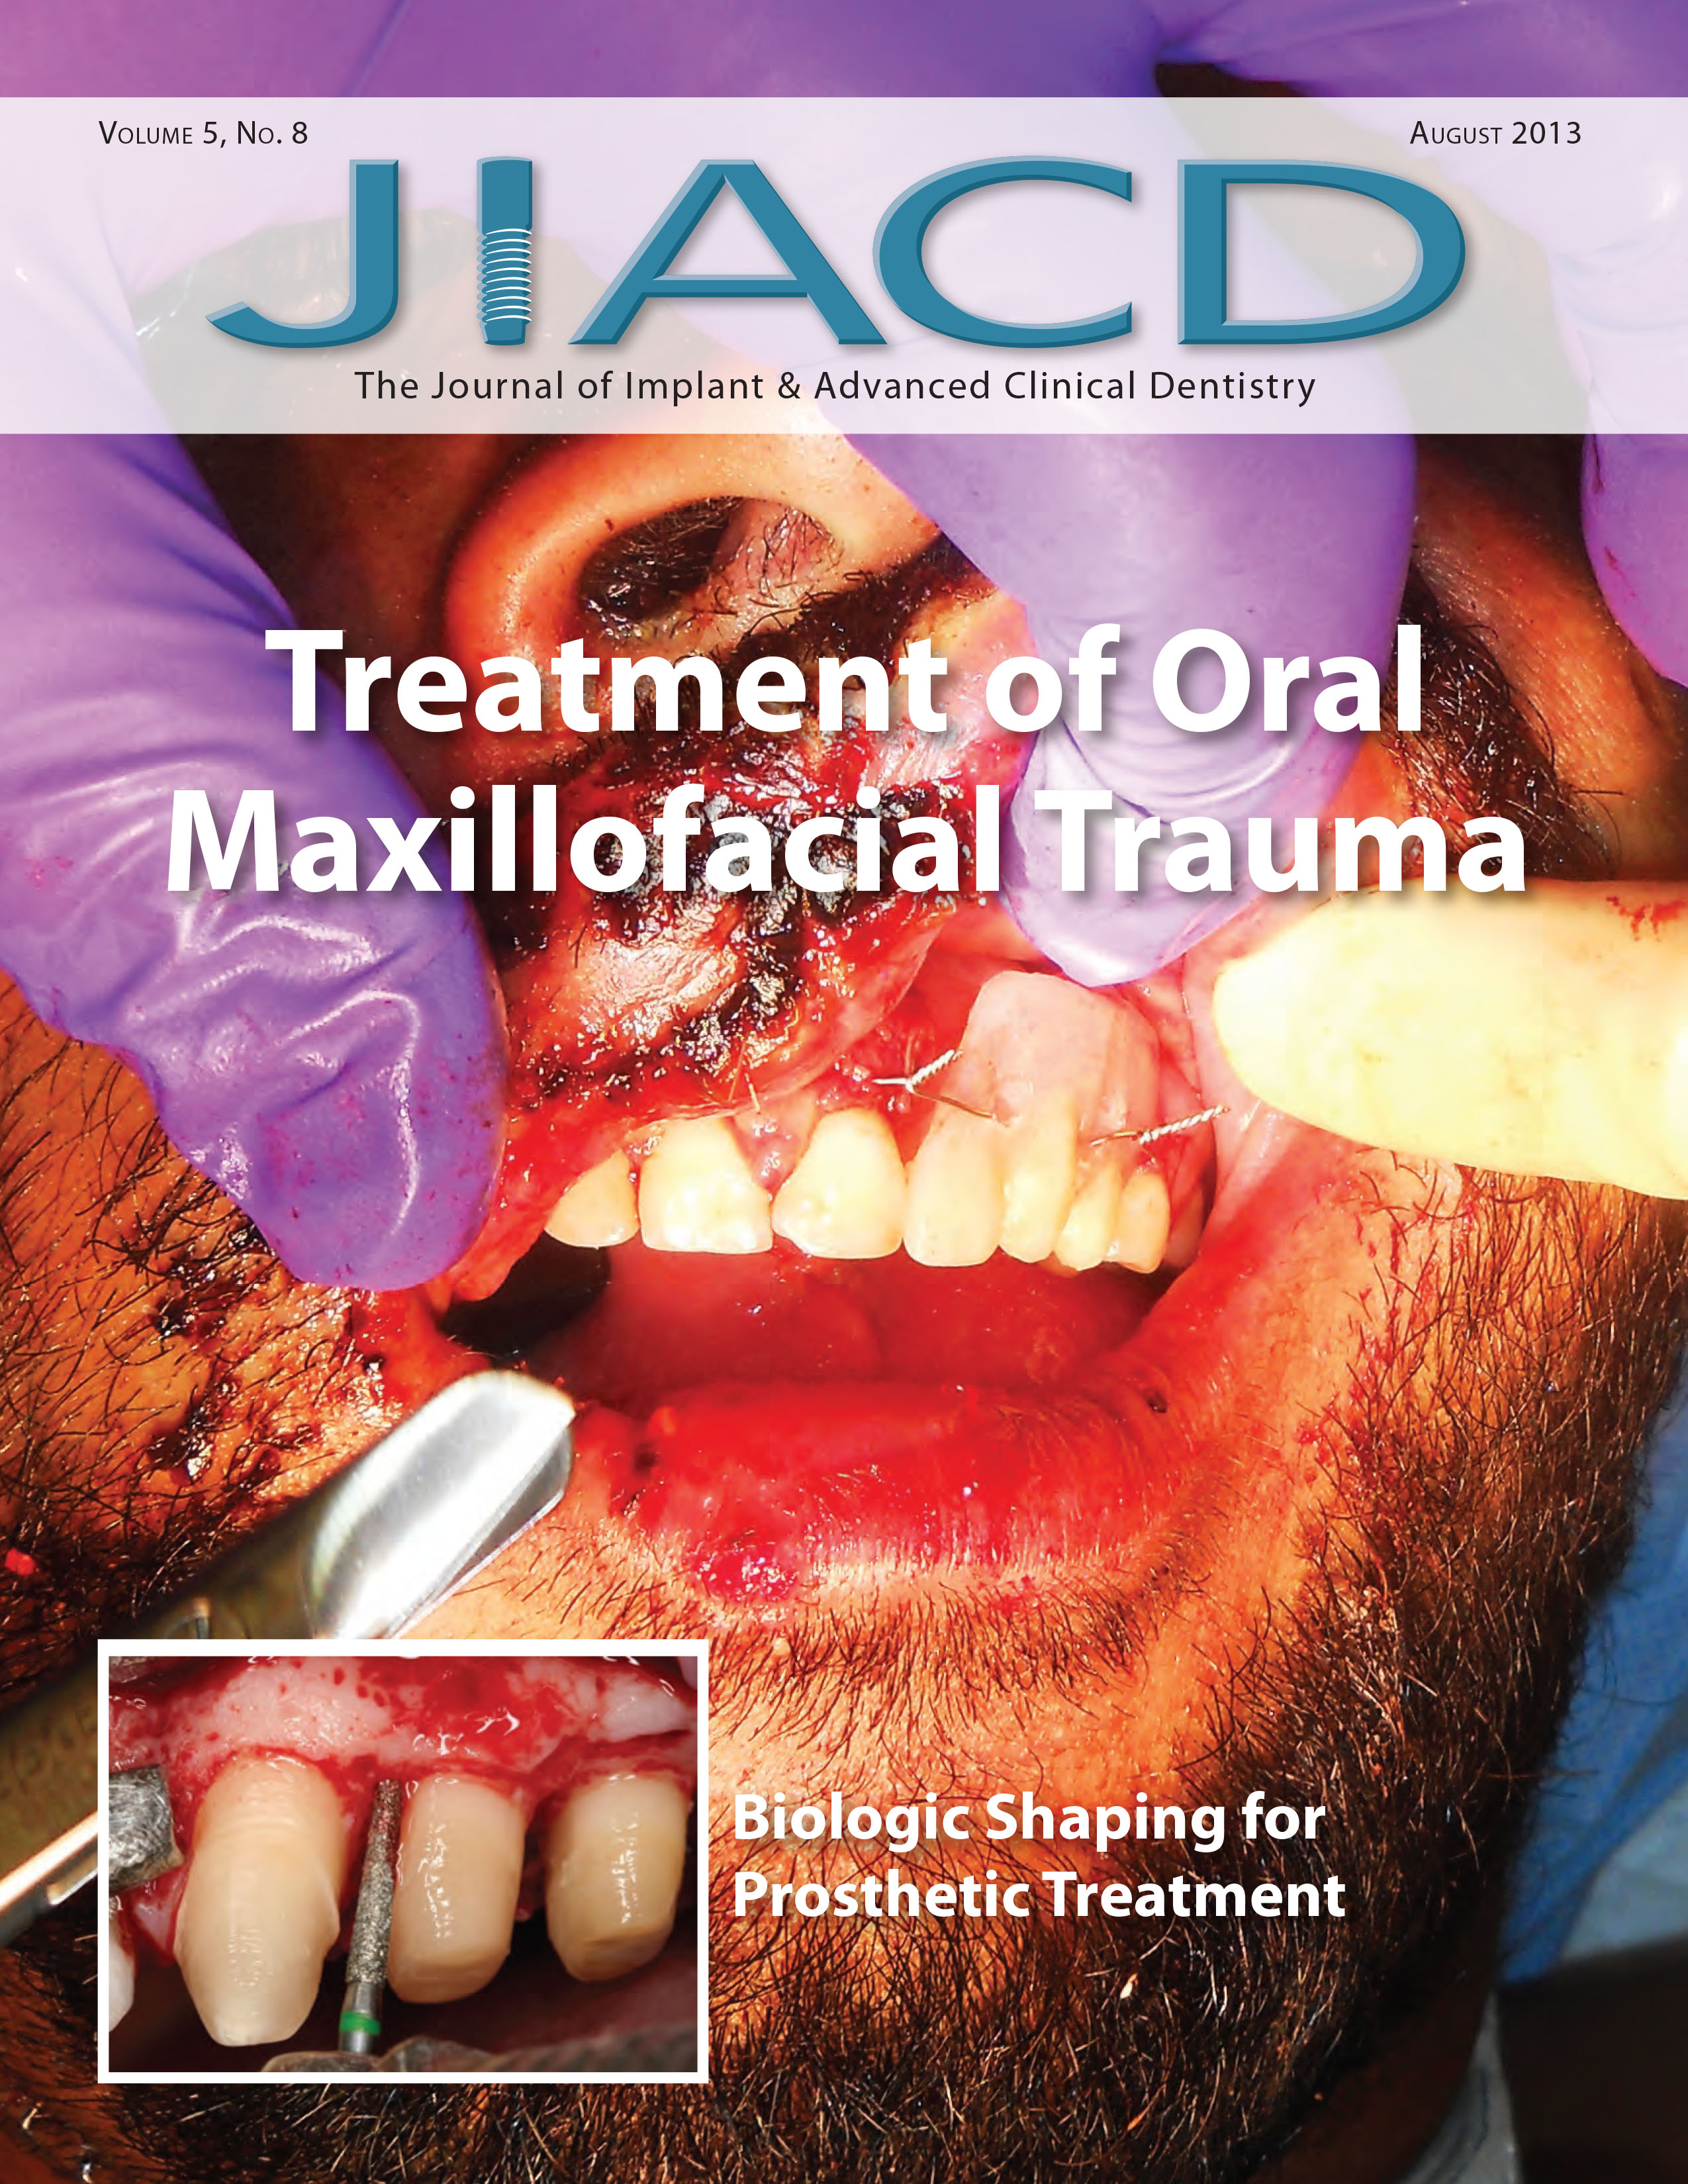 Treatment of Oral Maxillofacial Trauma